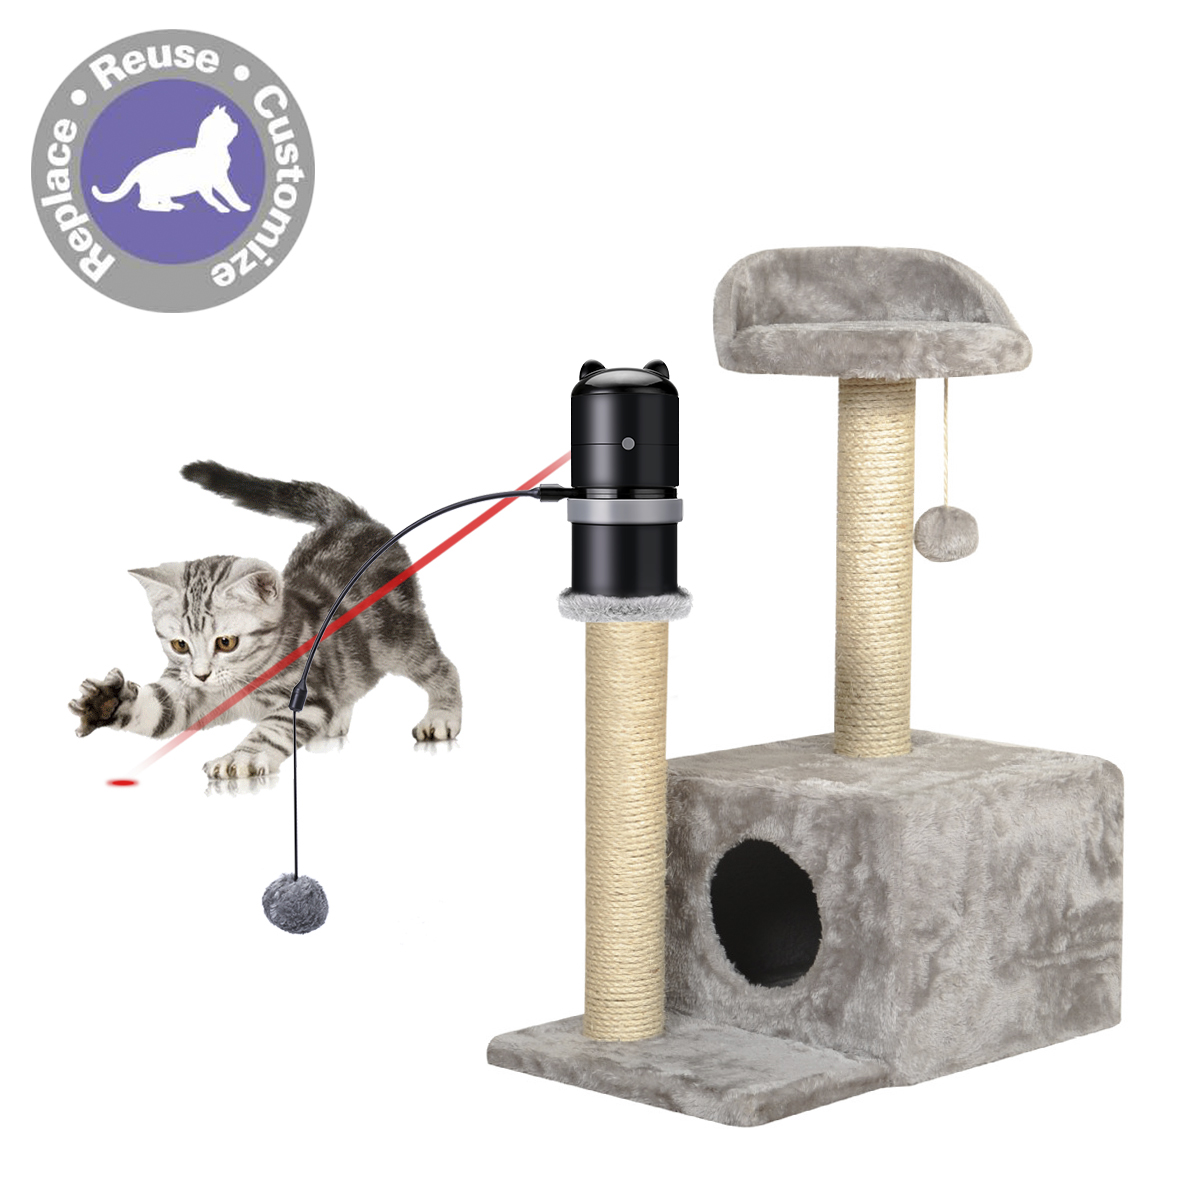 Cat Toys Laser Topper Toys Add to Any Scratching Post 360 degree Automatic Rotating Laser Electronic Motion Laser Cat Toy Бутылка